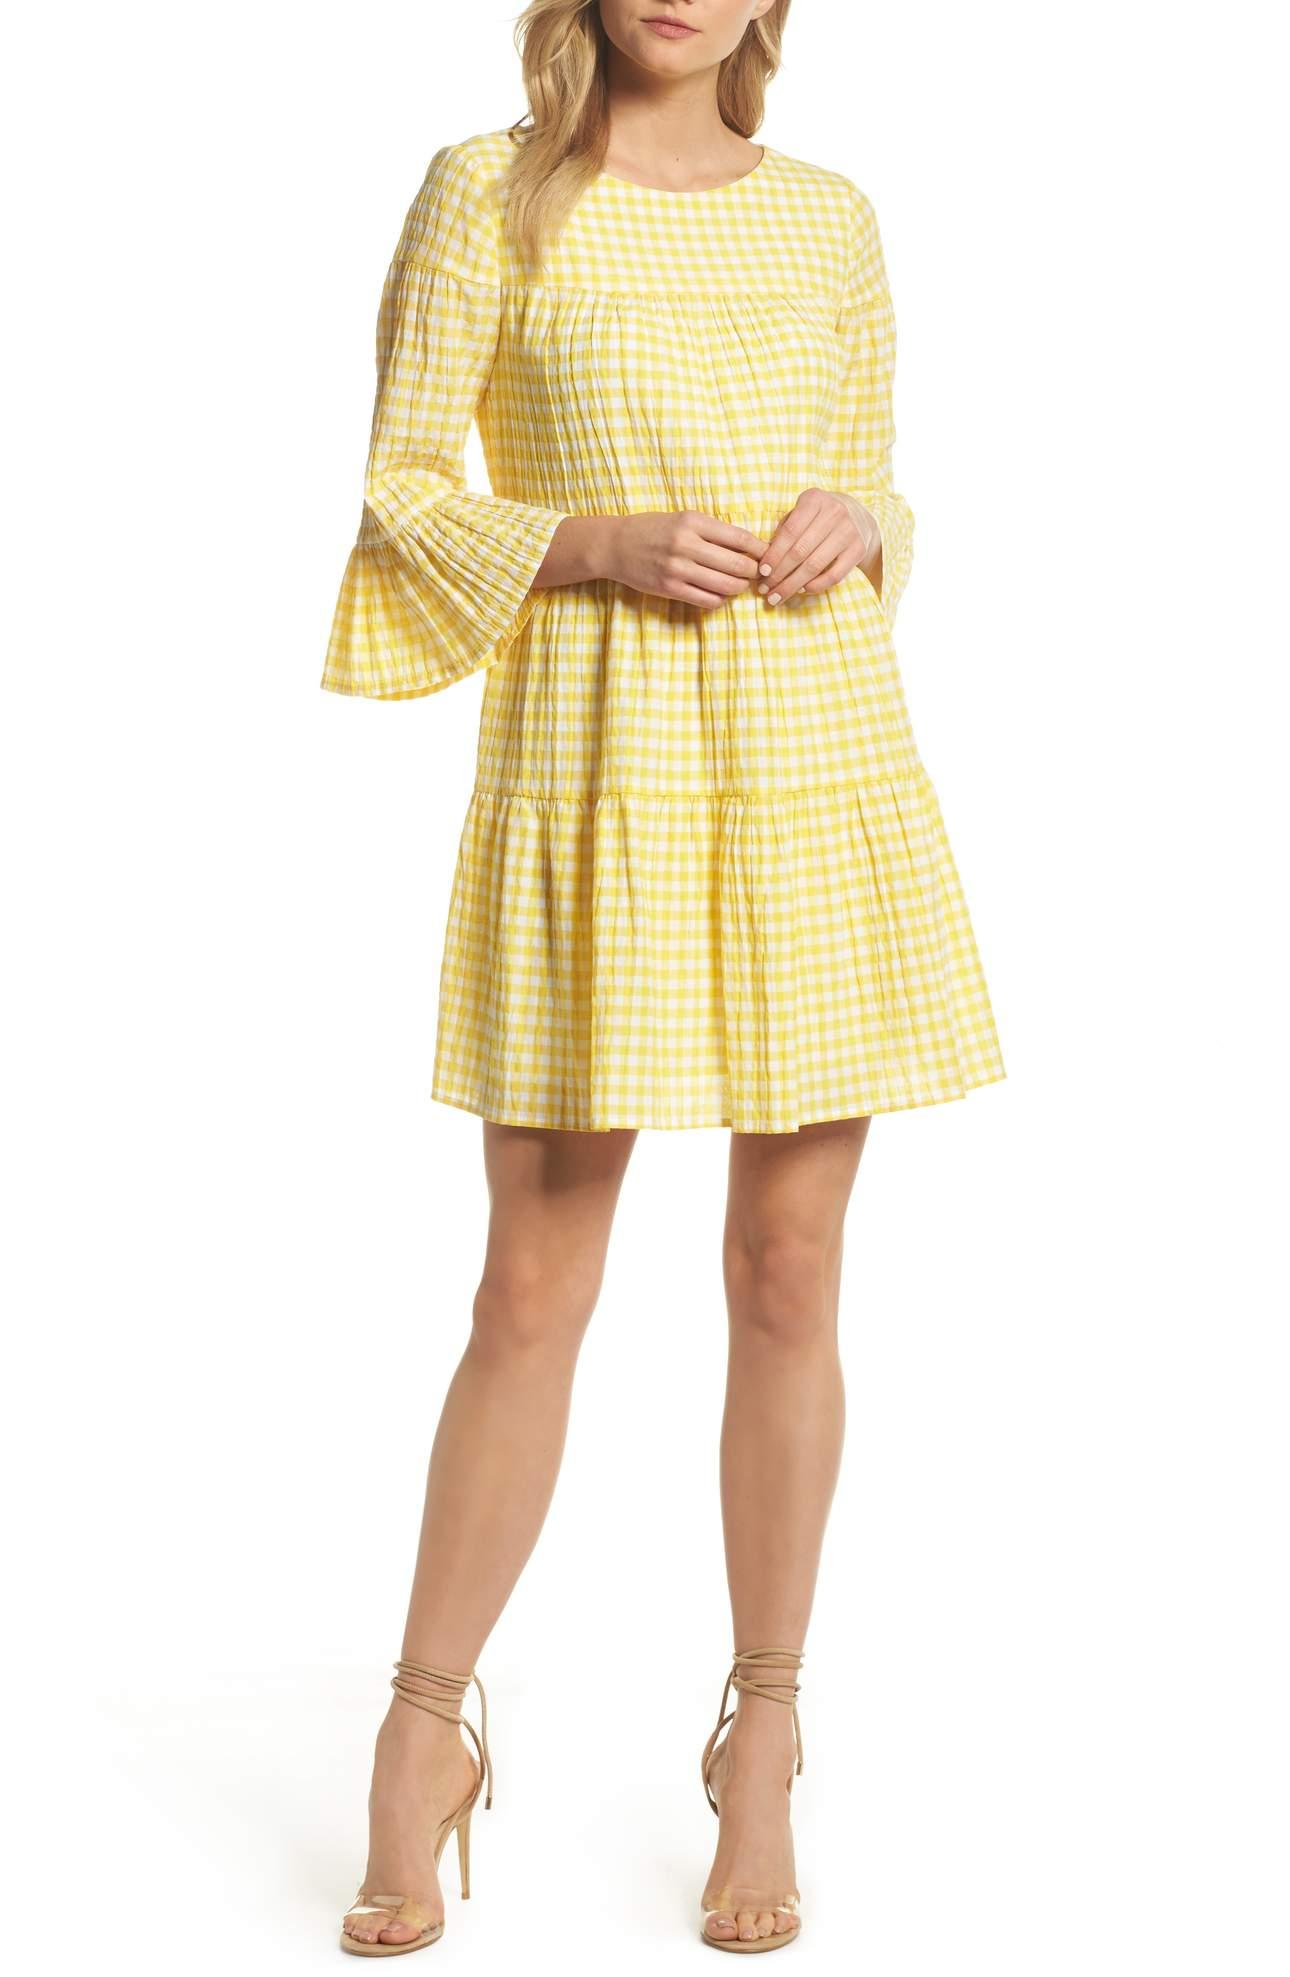 <p>Be a ray of sunshine wherever you go in this gingham swing dress that's ready for picnics, park strolls and garden parties.{&nbsp;}Gingham Swing Dress/MAGGY LONDON. $128.00 at Nordstrom. (Image: Nordstrom)</p><p></p>